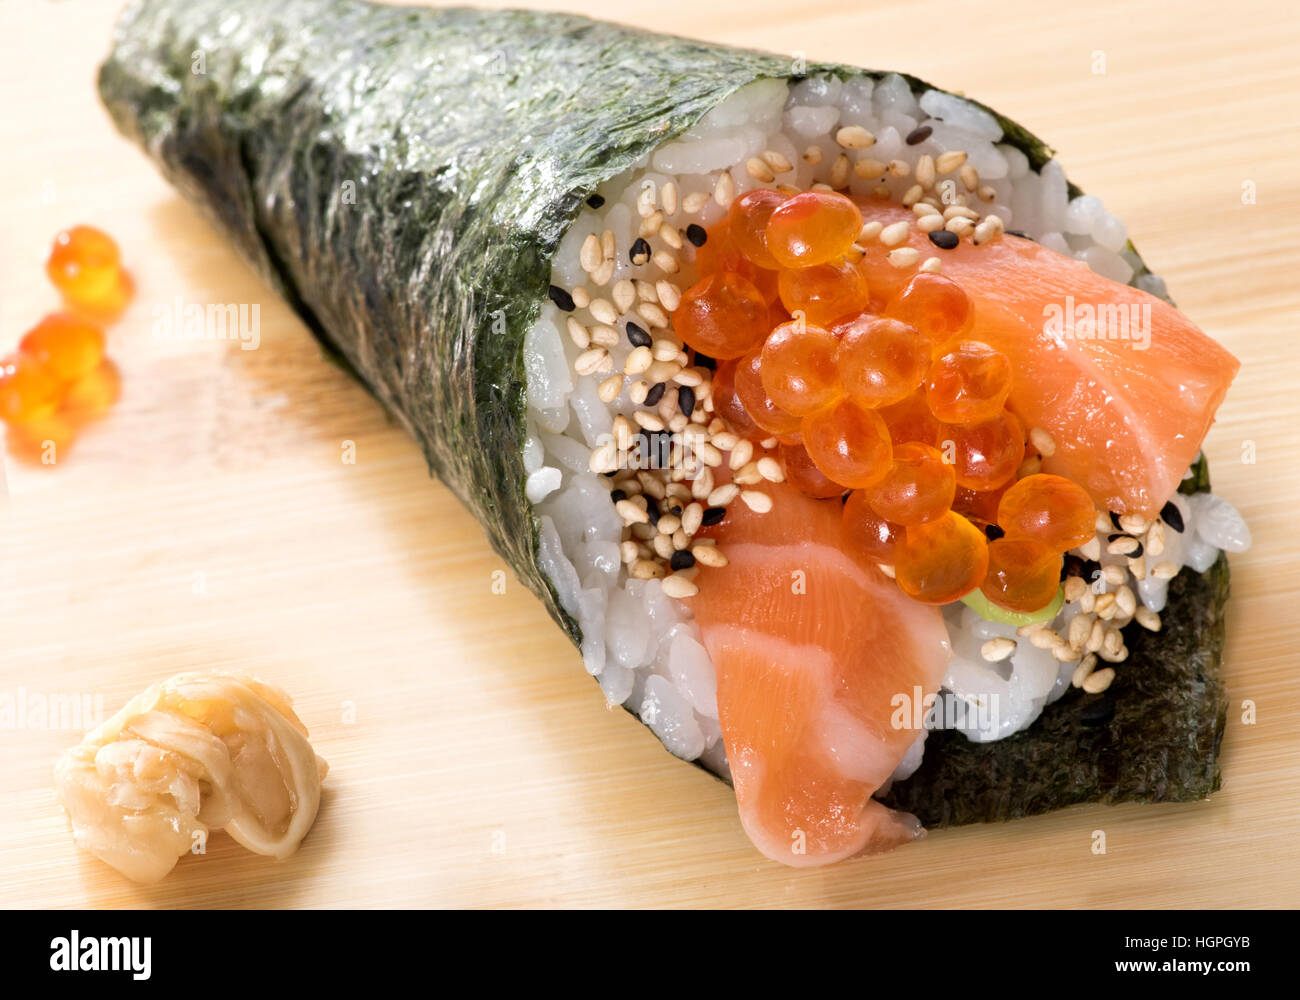 Close view of Japanese cuisine sushi roll with salmon, caviar and sesame served on wooden board - Stock Image